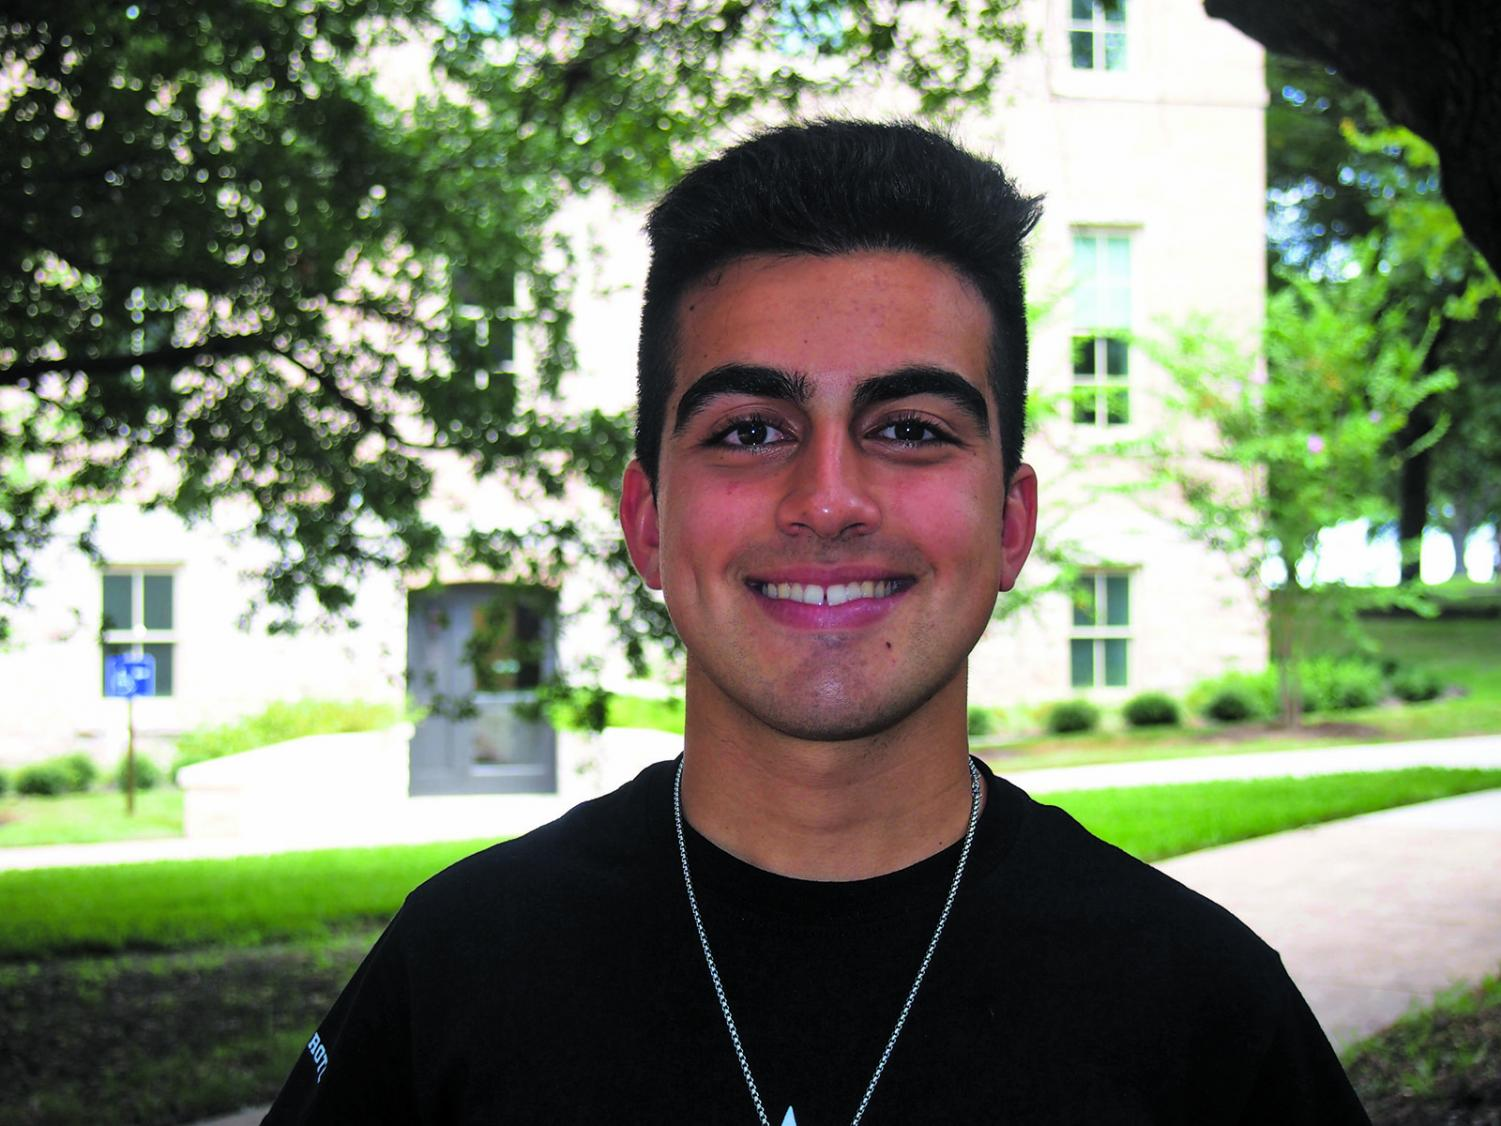 Ebrahimi is a part of the University of Texas' ROTC.